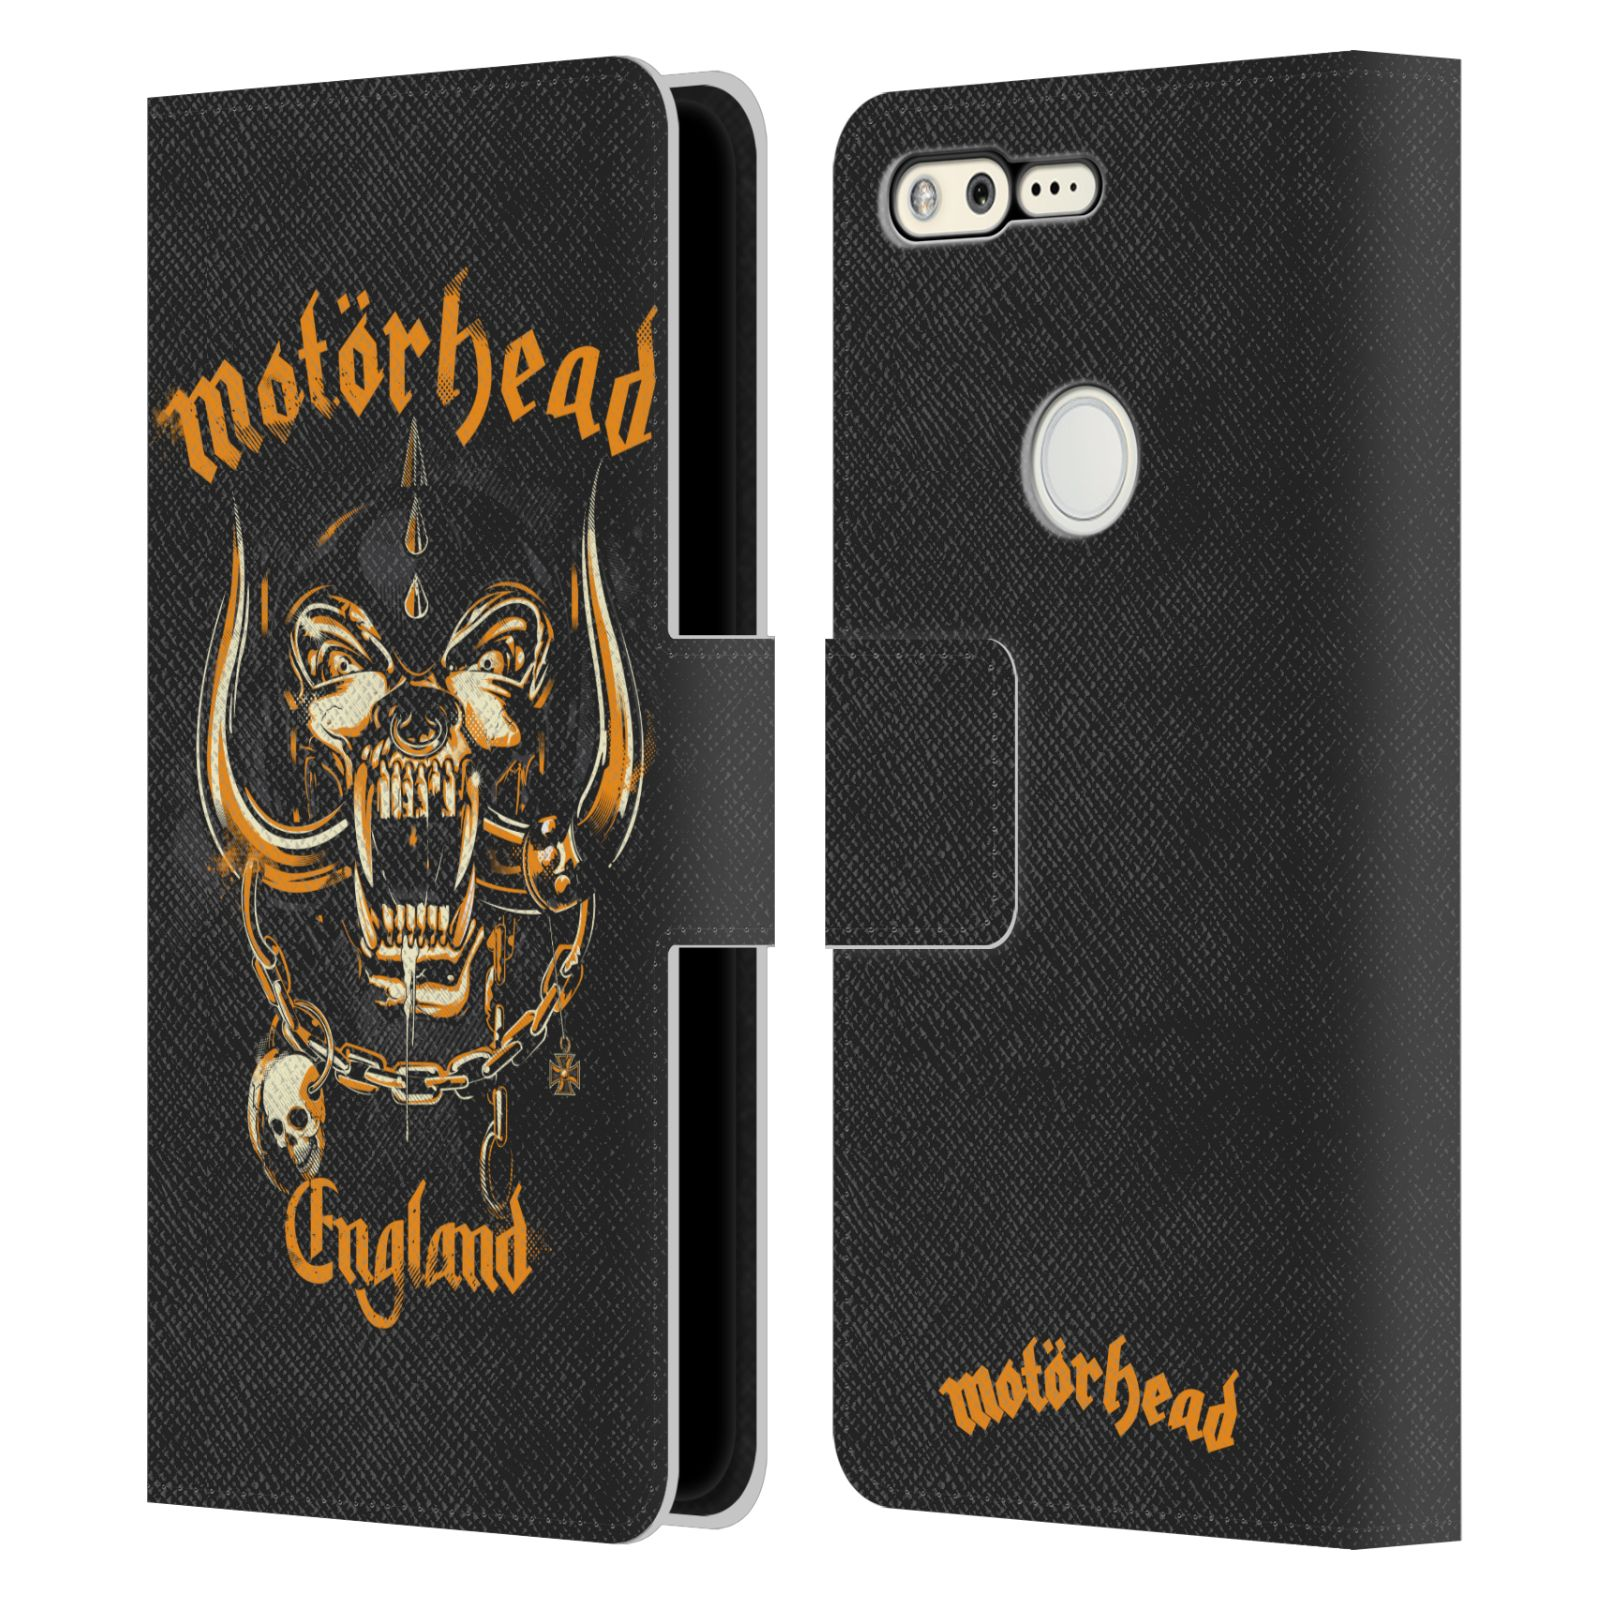 OFFICIAL-MOTORHEAD-LOGO-LEATHER-BOOK-WALLET-CASE-COVER-FOR-GOOGLE-PHONES